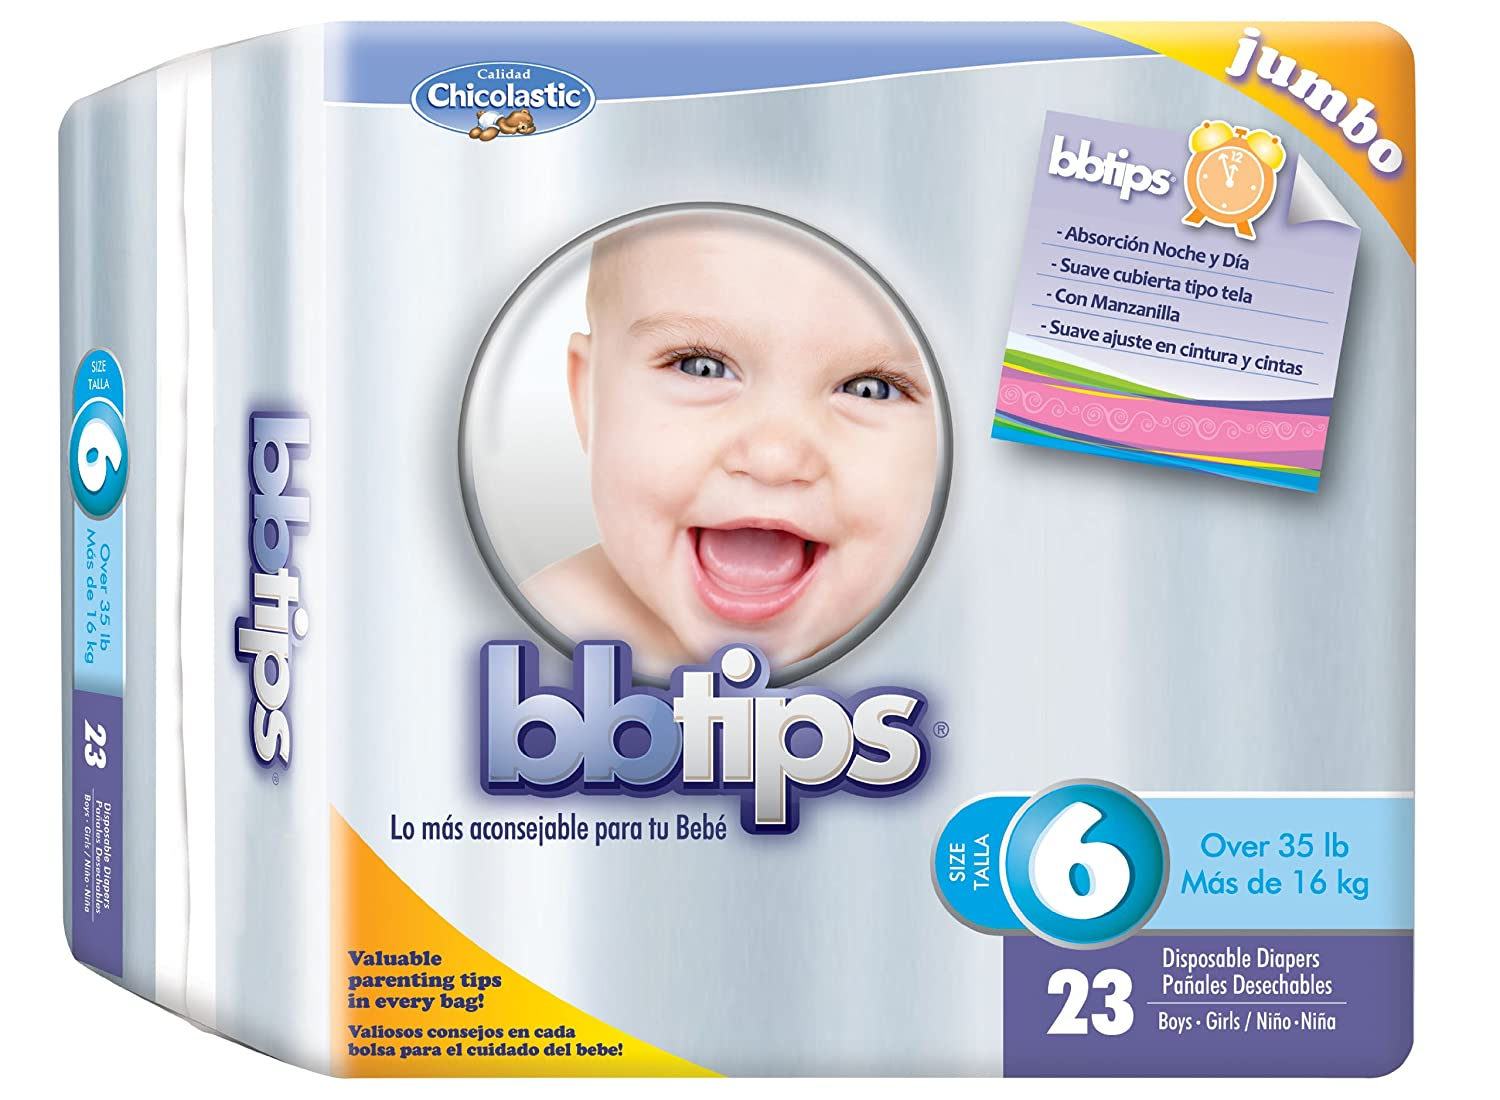 Amazon.com: Chicolastic Bbtips Infant Disposable Ultra Diapers, XX-Large, Size 6, 92 Count: Health & Personal Care